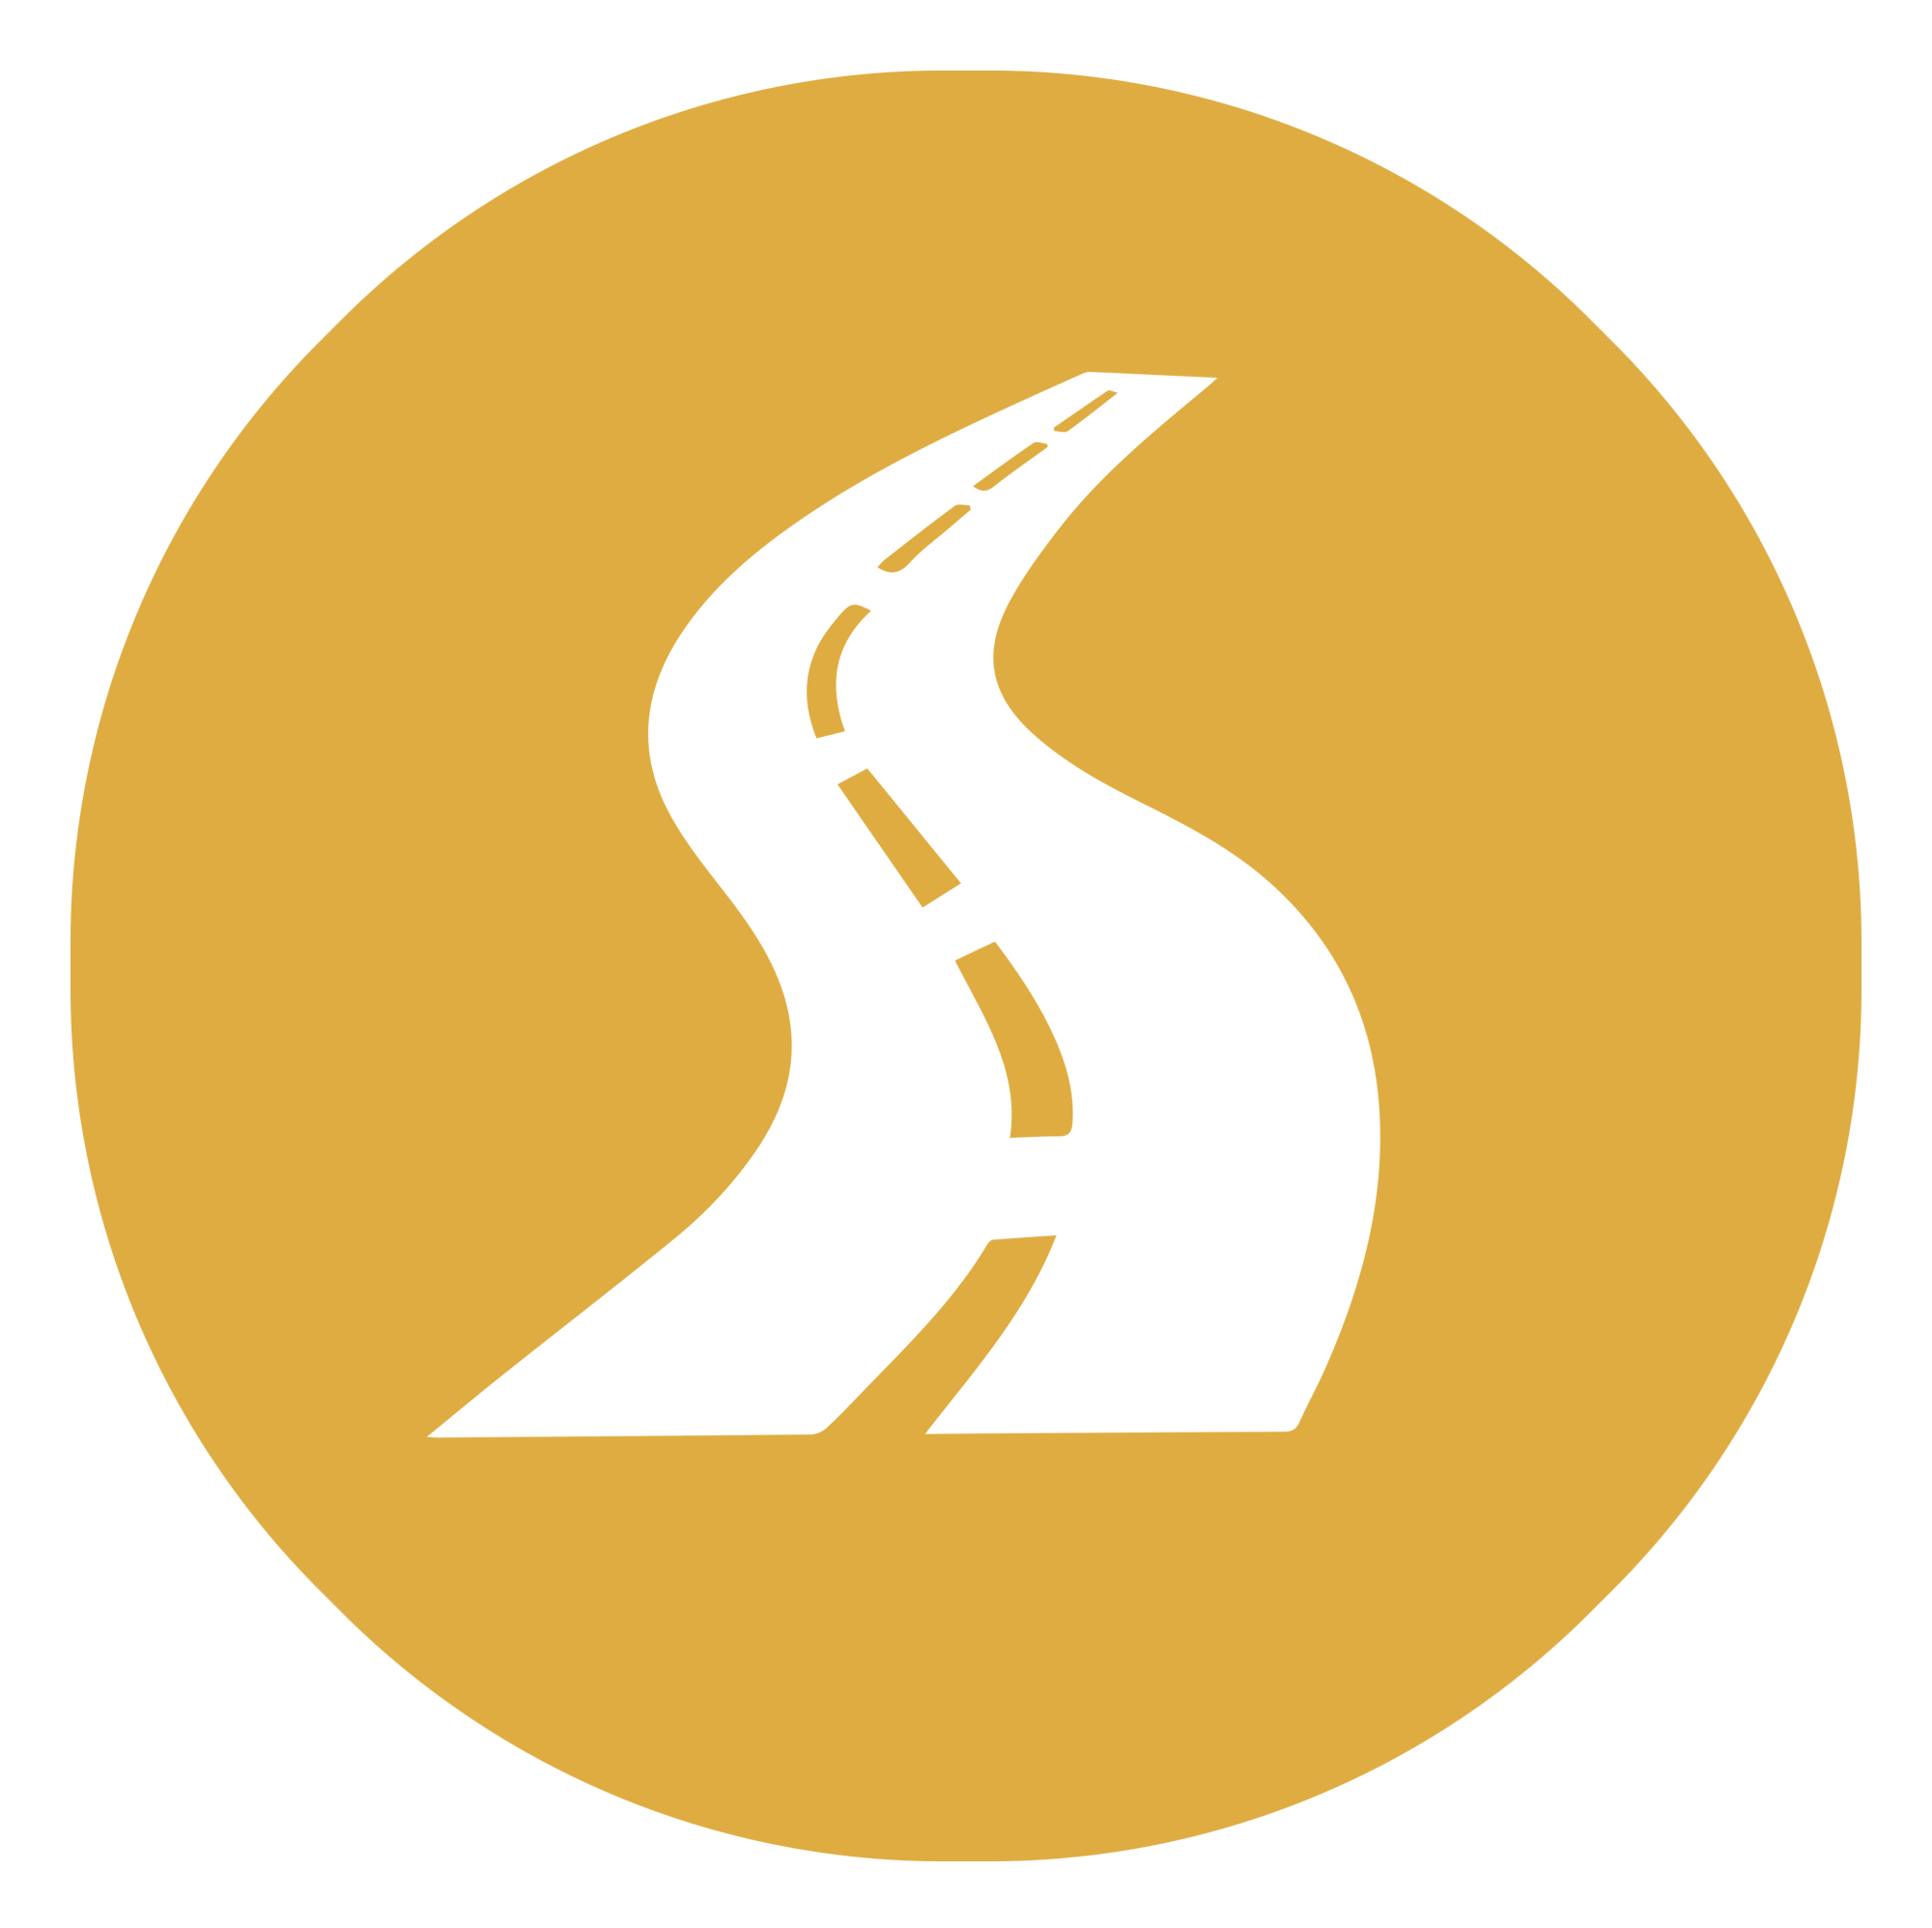 SUB_ICON-ROADS_1.png